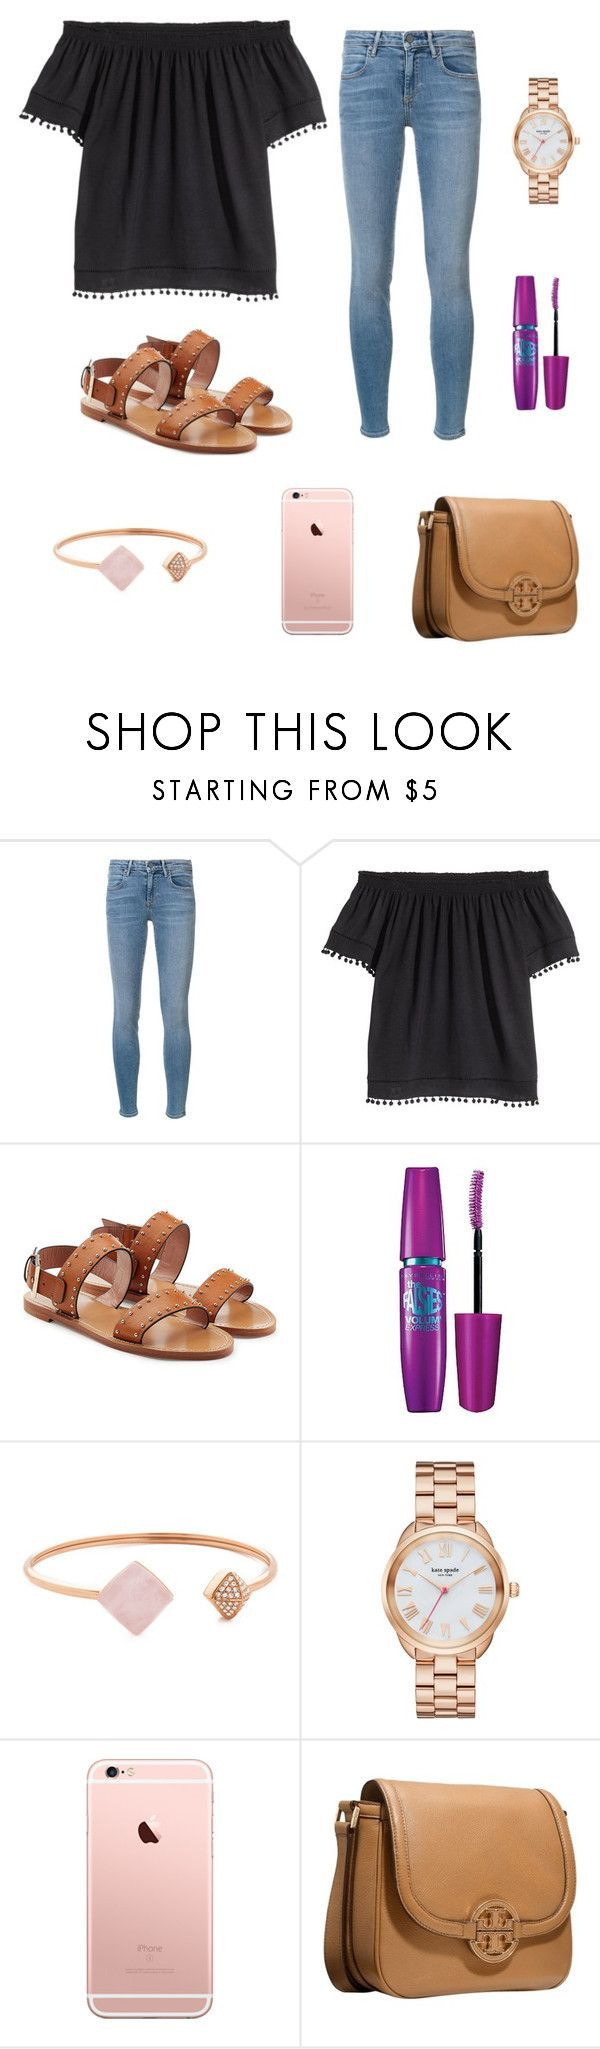 ❣️ by vec2002 ❤ liked on Polyvore featuring Alexander Wang, HM, RED Valentino, Maybelline, Michael Kors, Kate Spade and Tory Burch